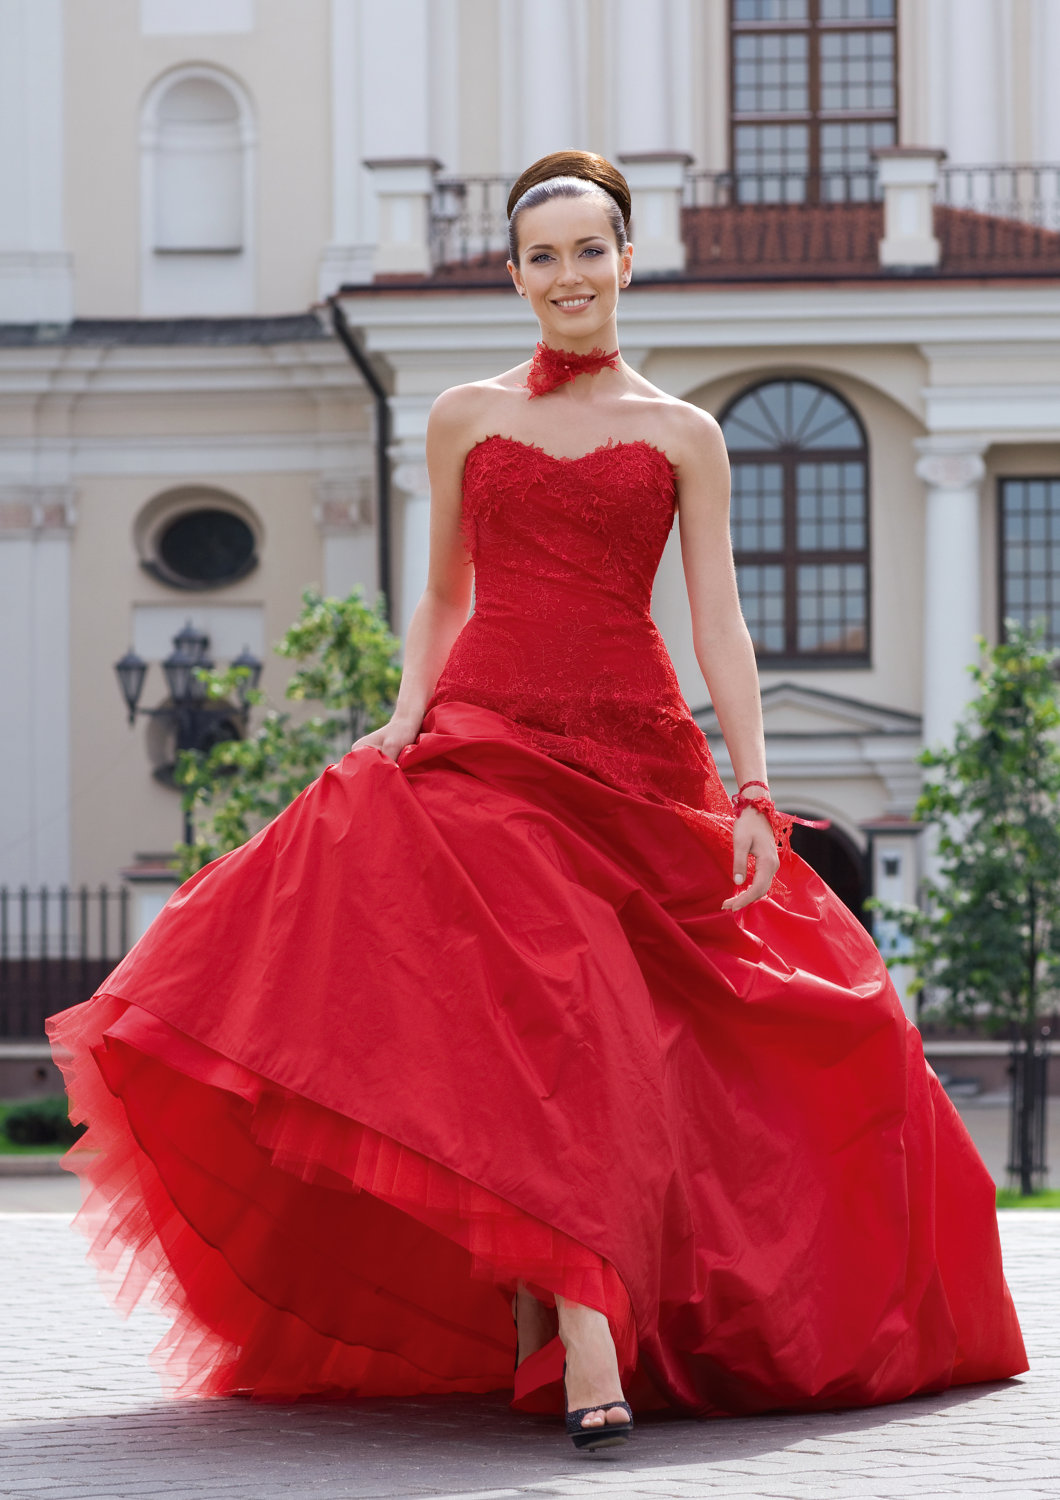 Red Wedding Dress Taffeta Tulle Onewed Com